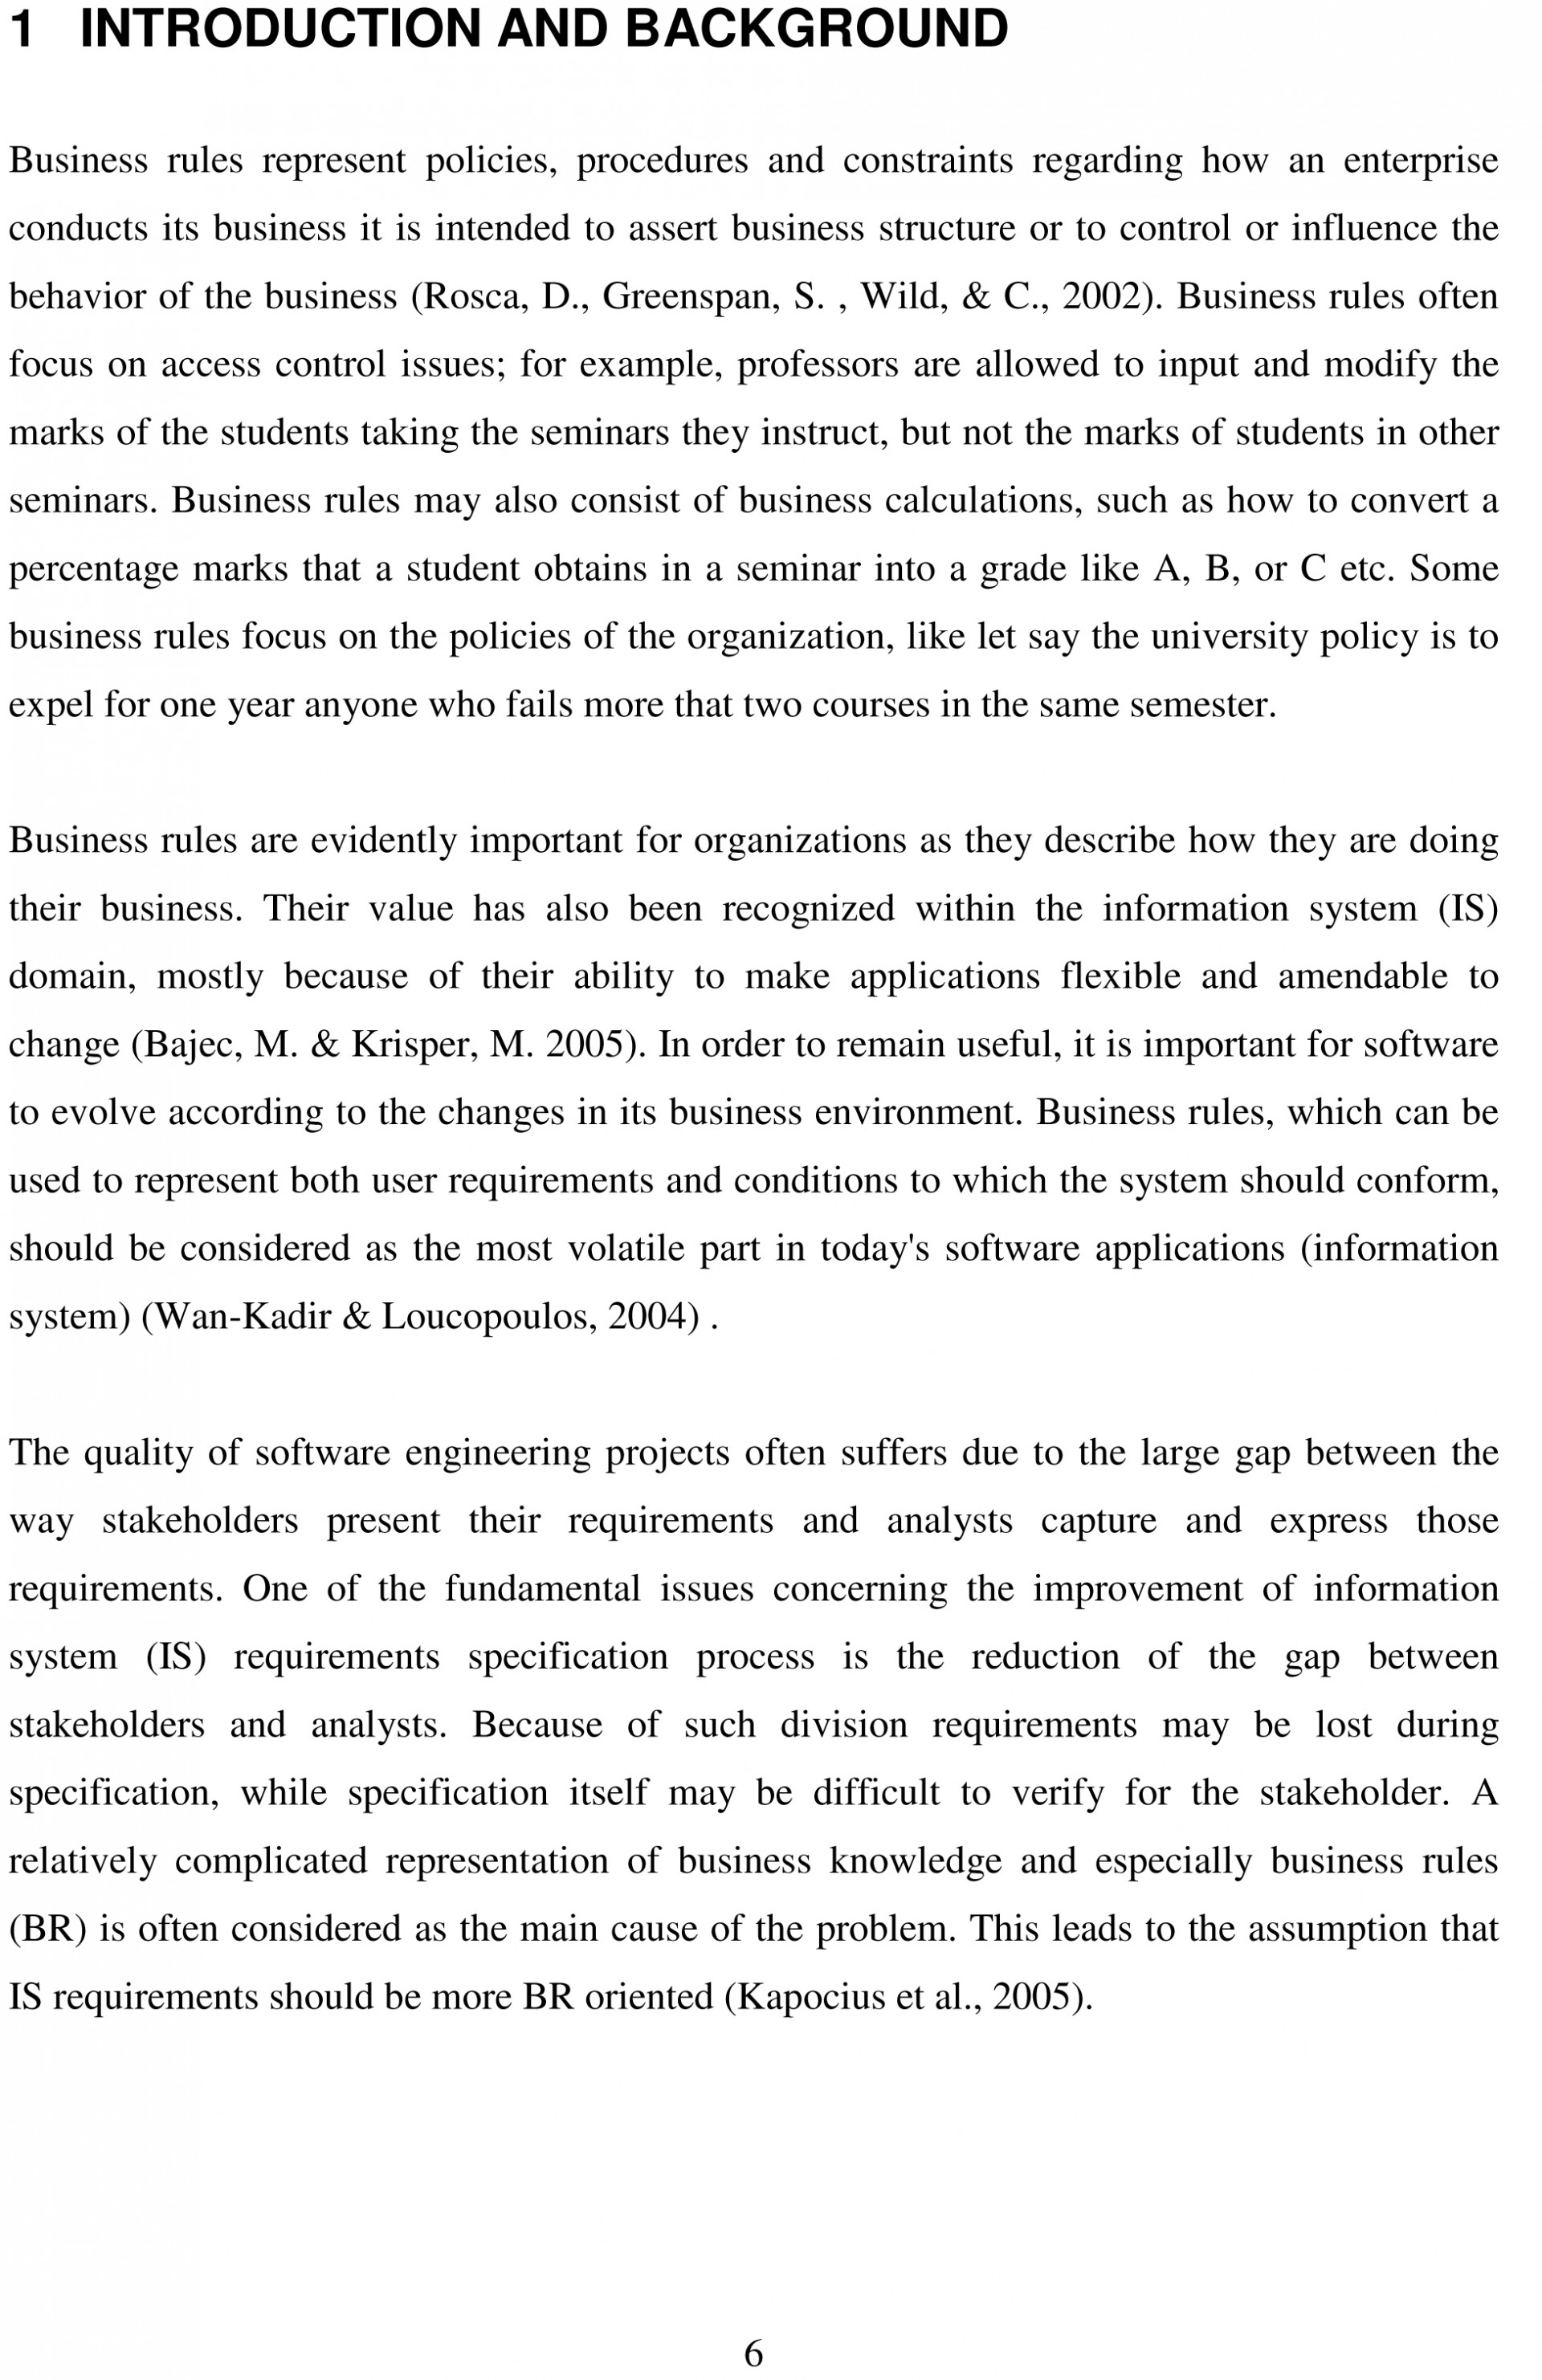 014 Thesis Free Sample1 Research Paper Example Of Simple Fantastic A Pdf 1920